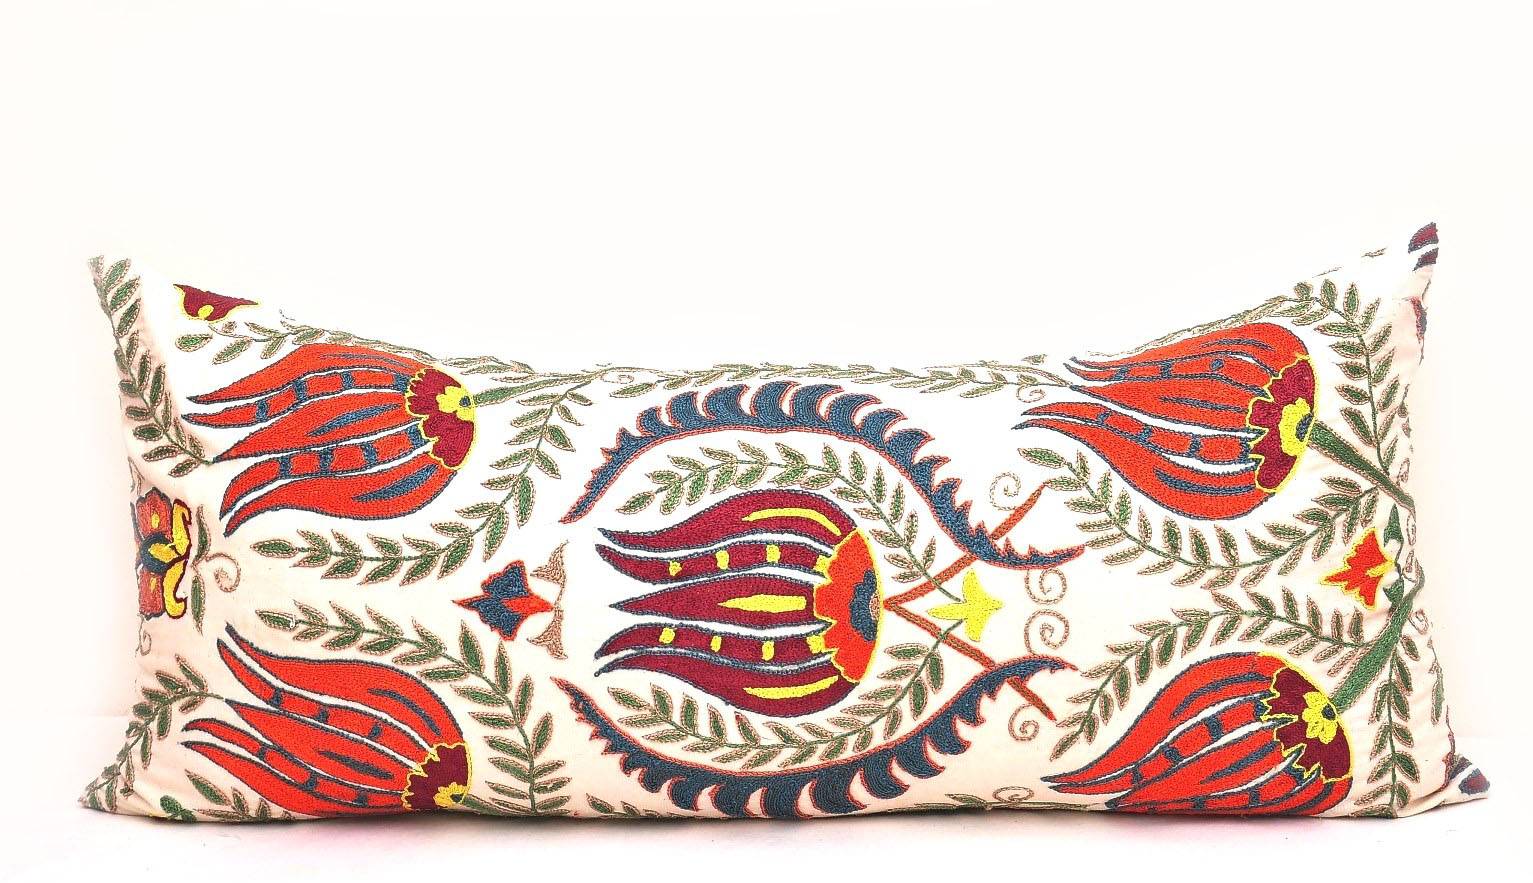 Throw Pillow Bolster : BOLSTER SUZANI THROW PILLOW CUSHION - Alesouk Grand Bazaar online shopping